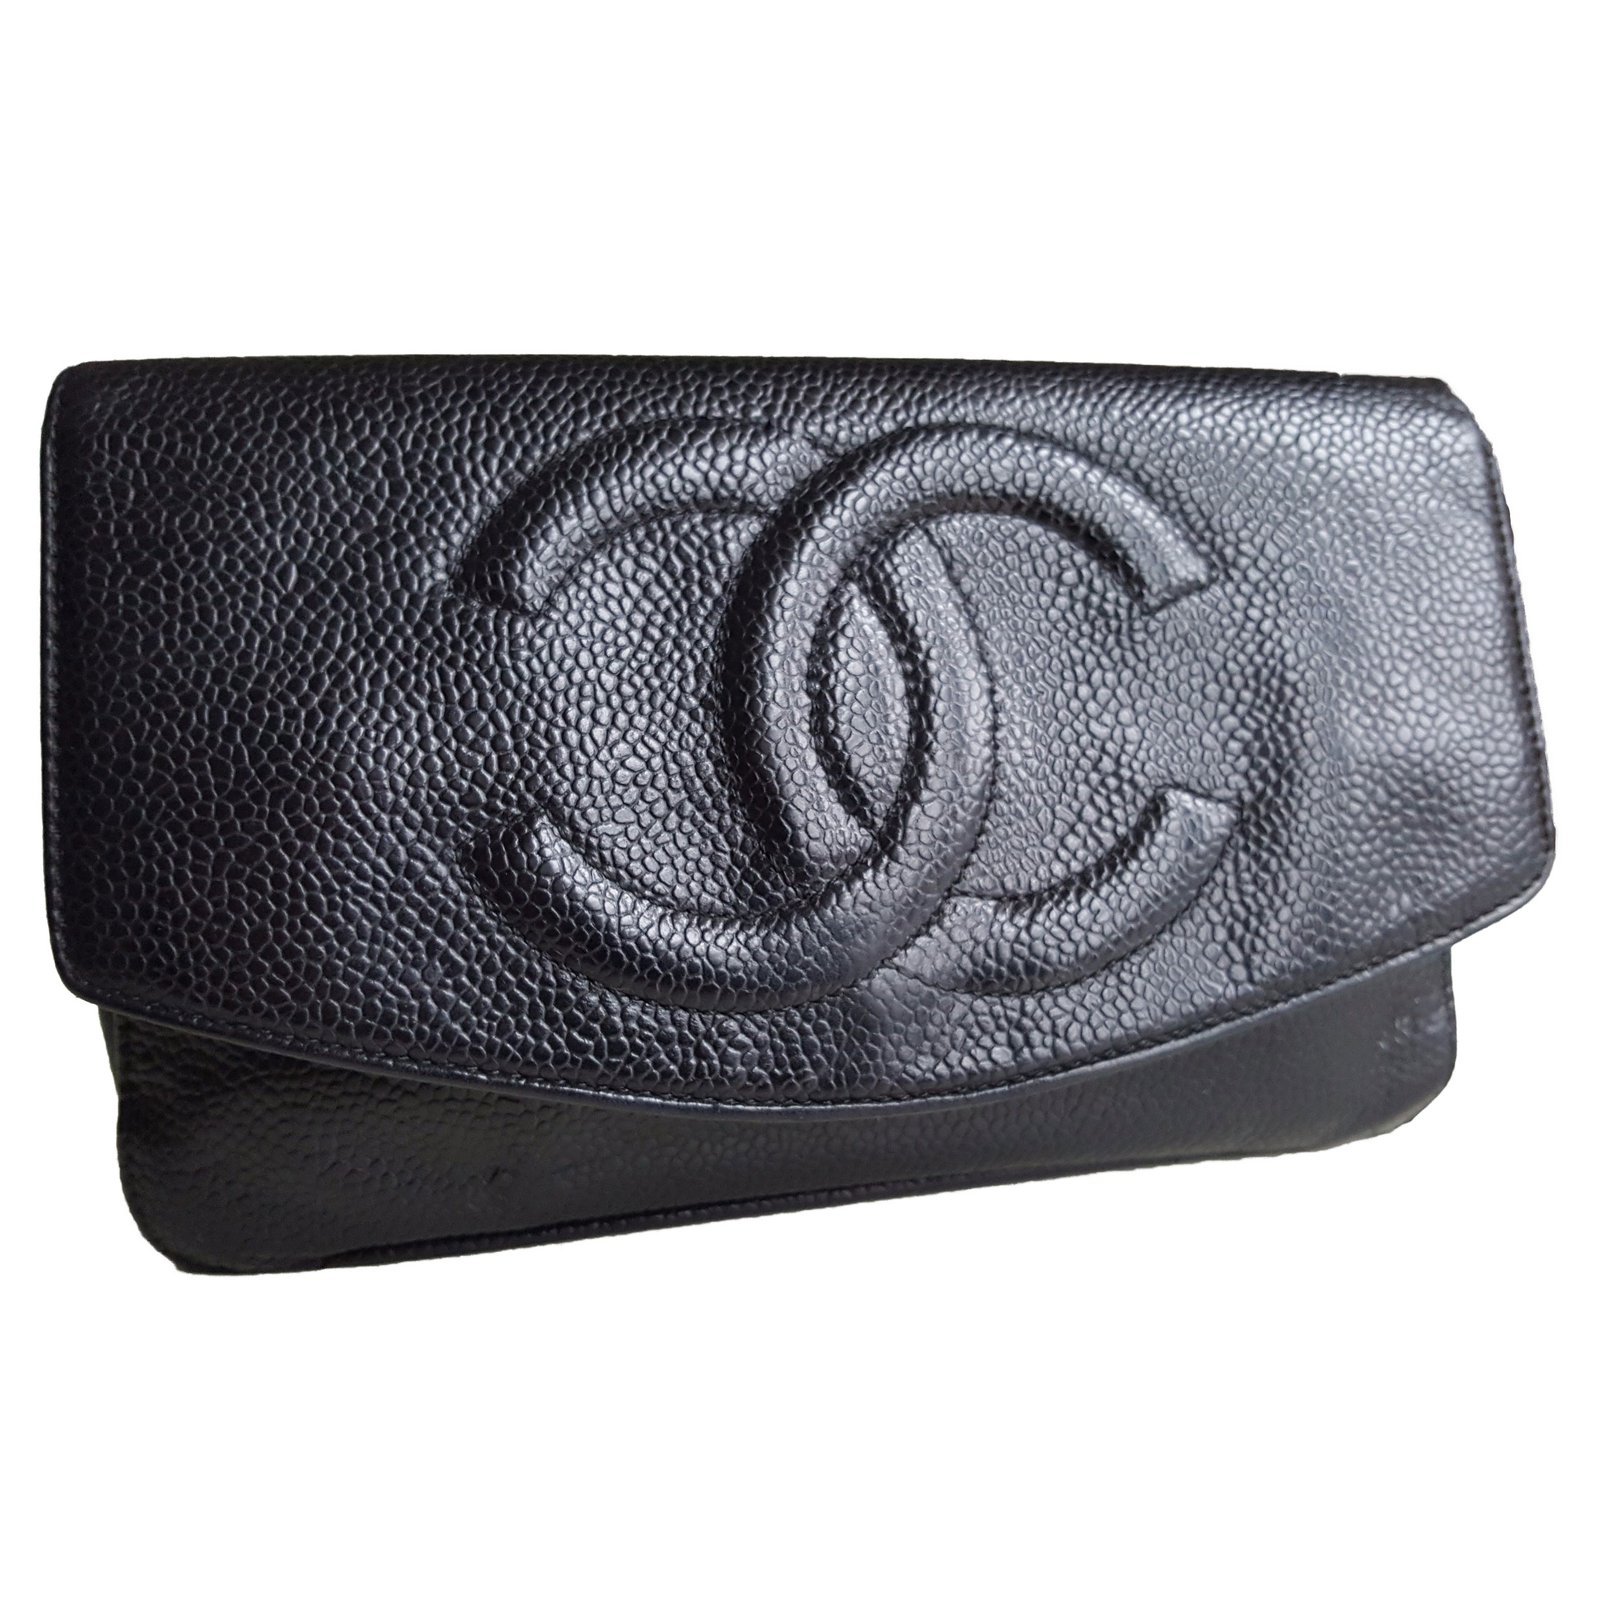 ef635c898afbca Chanel Wallets Wallets Leather Black ref.51992 - Joli Closet